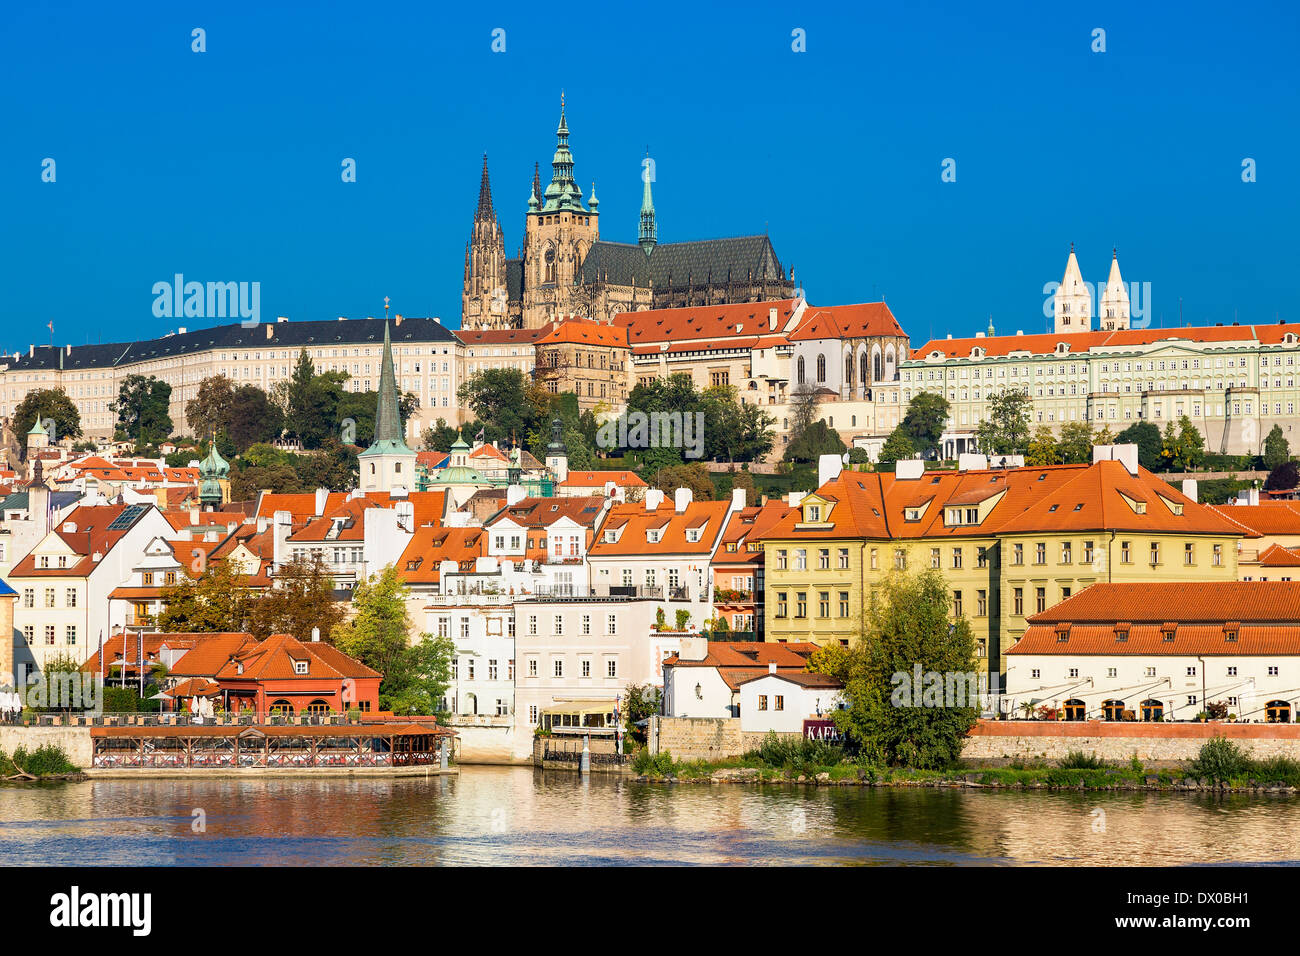 St Vitus's Cathedral and Castle of Prague - Stock Image